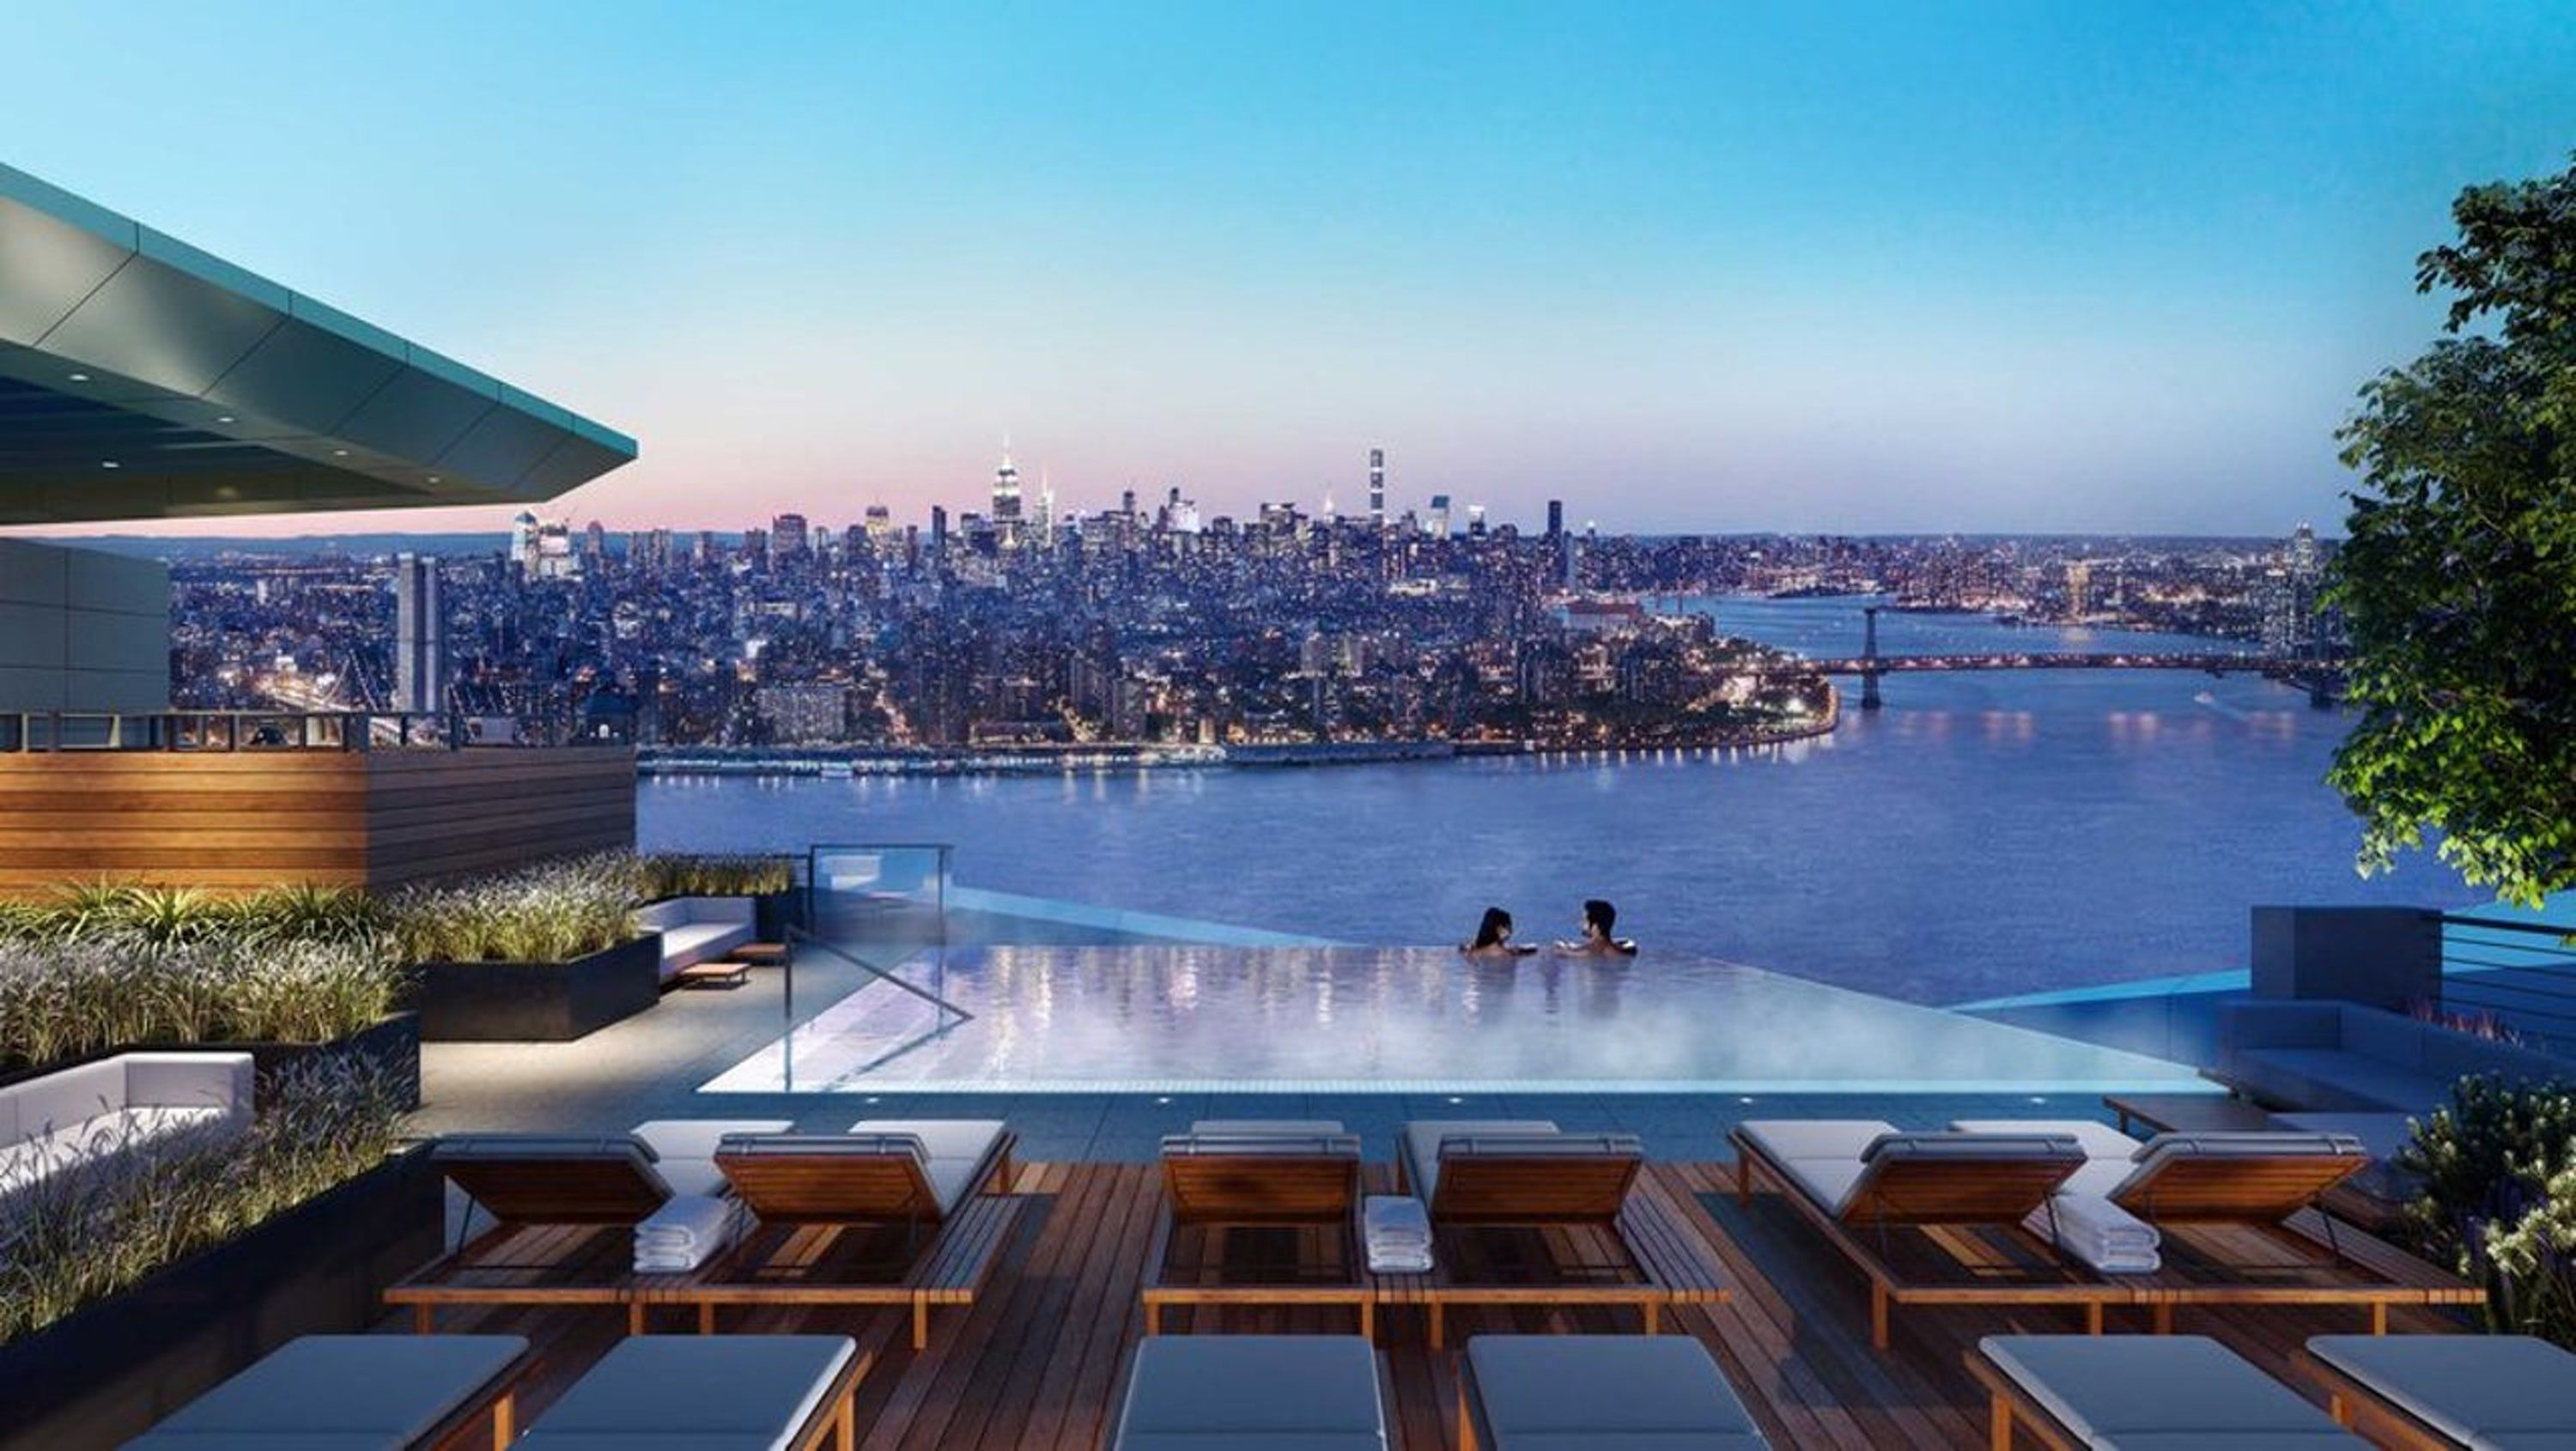 How The Infinity Pool Became A Social Media Status Symbol Rooftop Pool Residential Pool Pool